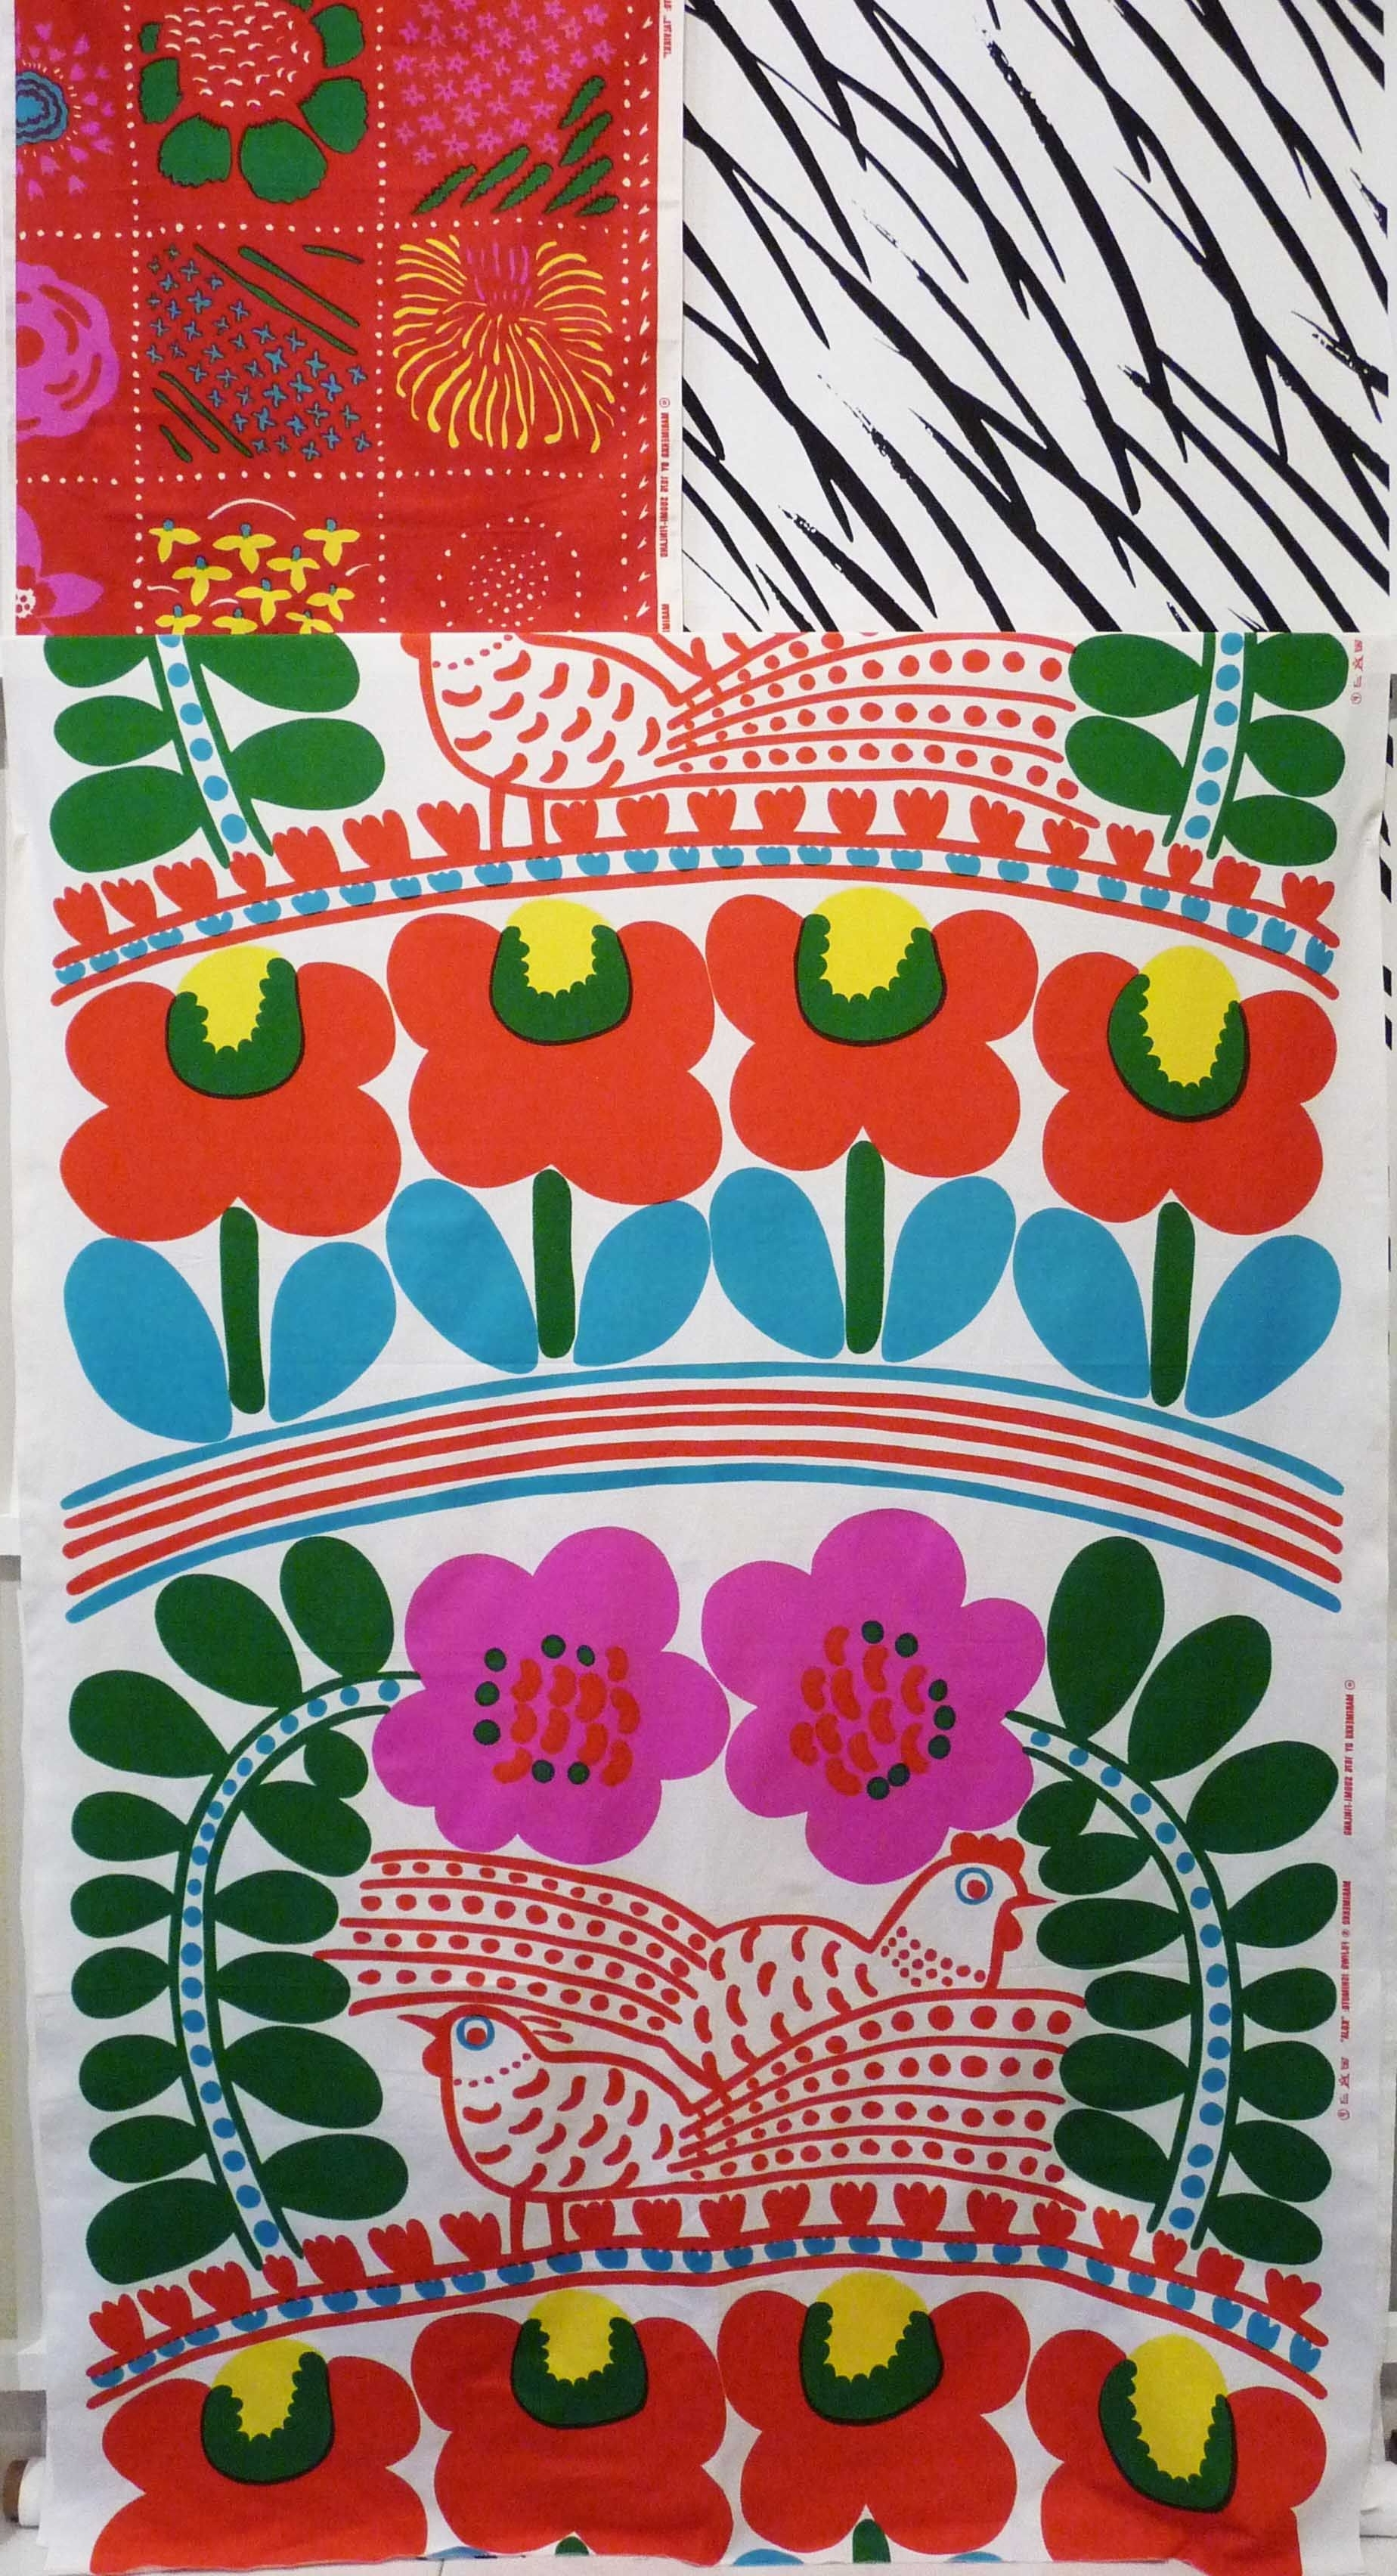 Popular Vintage Marimekko Fabric Designedjapanese Textile Designer Intended For Marimekko 'karkuteilla' Fabric Wall Art (Gallery 15 of 15)